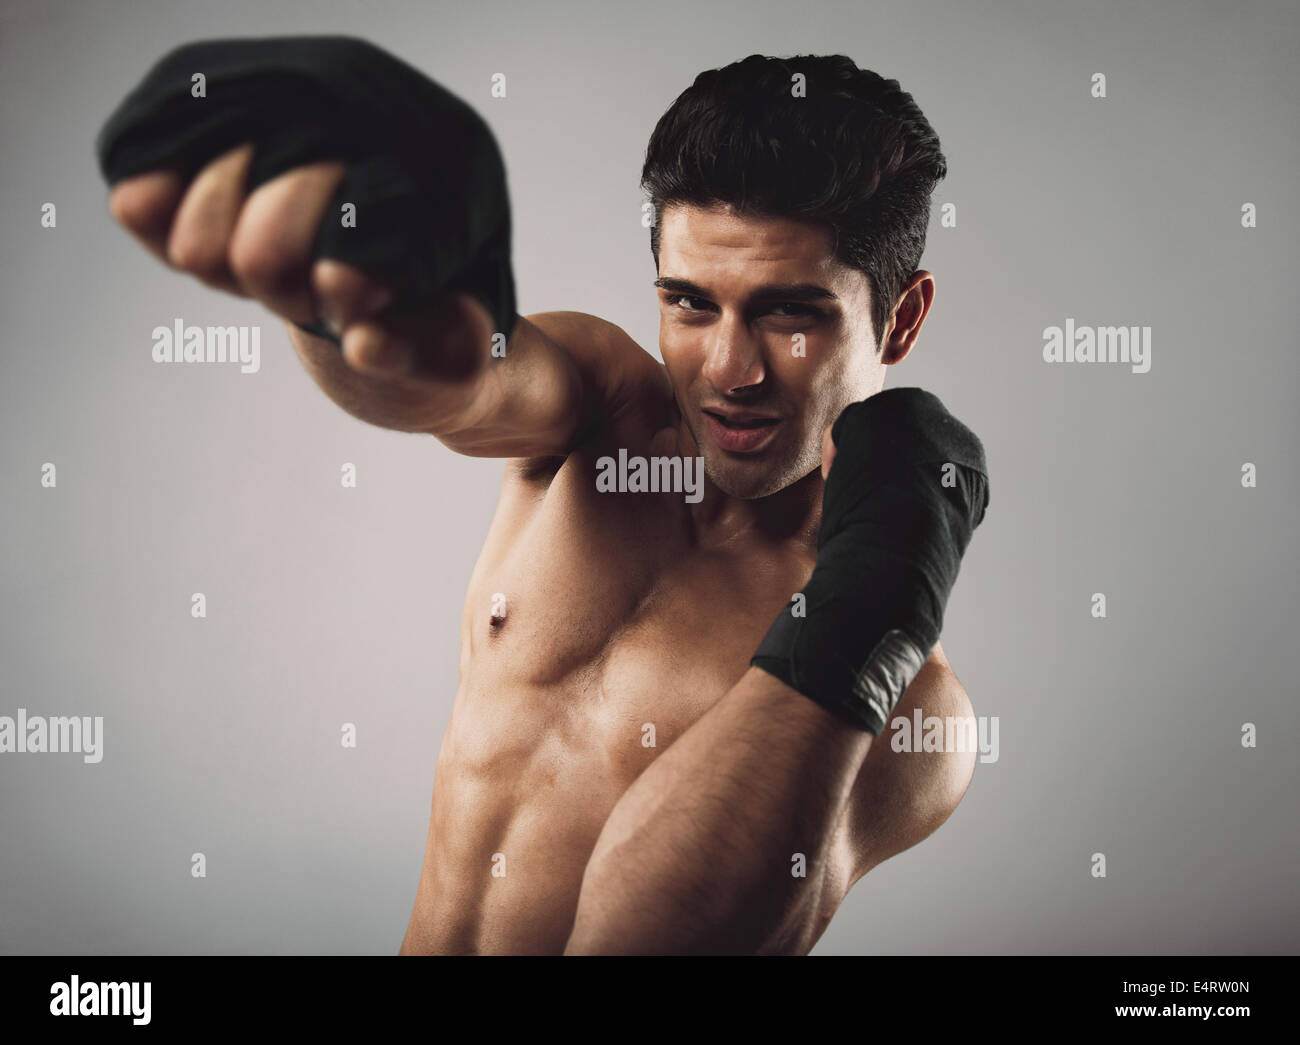 Hispanic young man practicing shadow boxing. Shirtless masculine male model with boxing gloves on grey background. - Stock Image